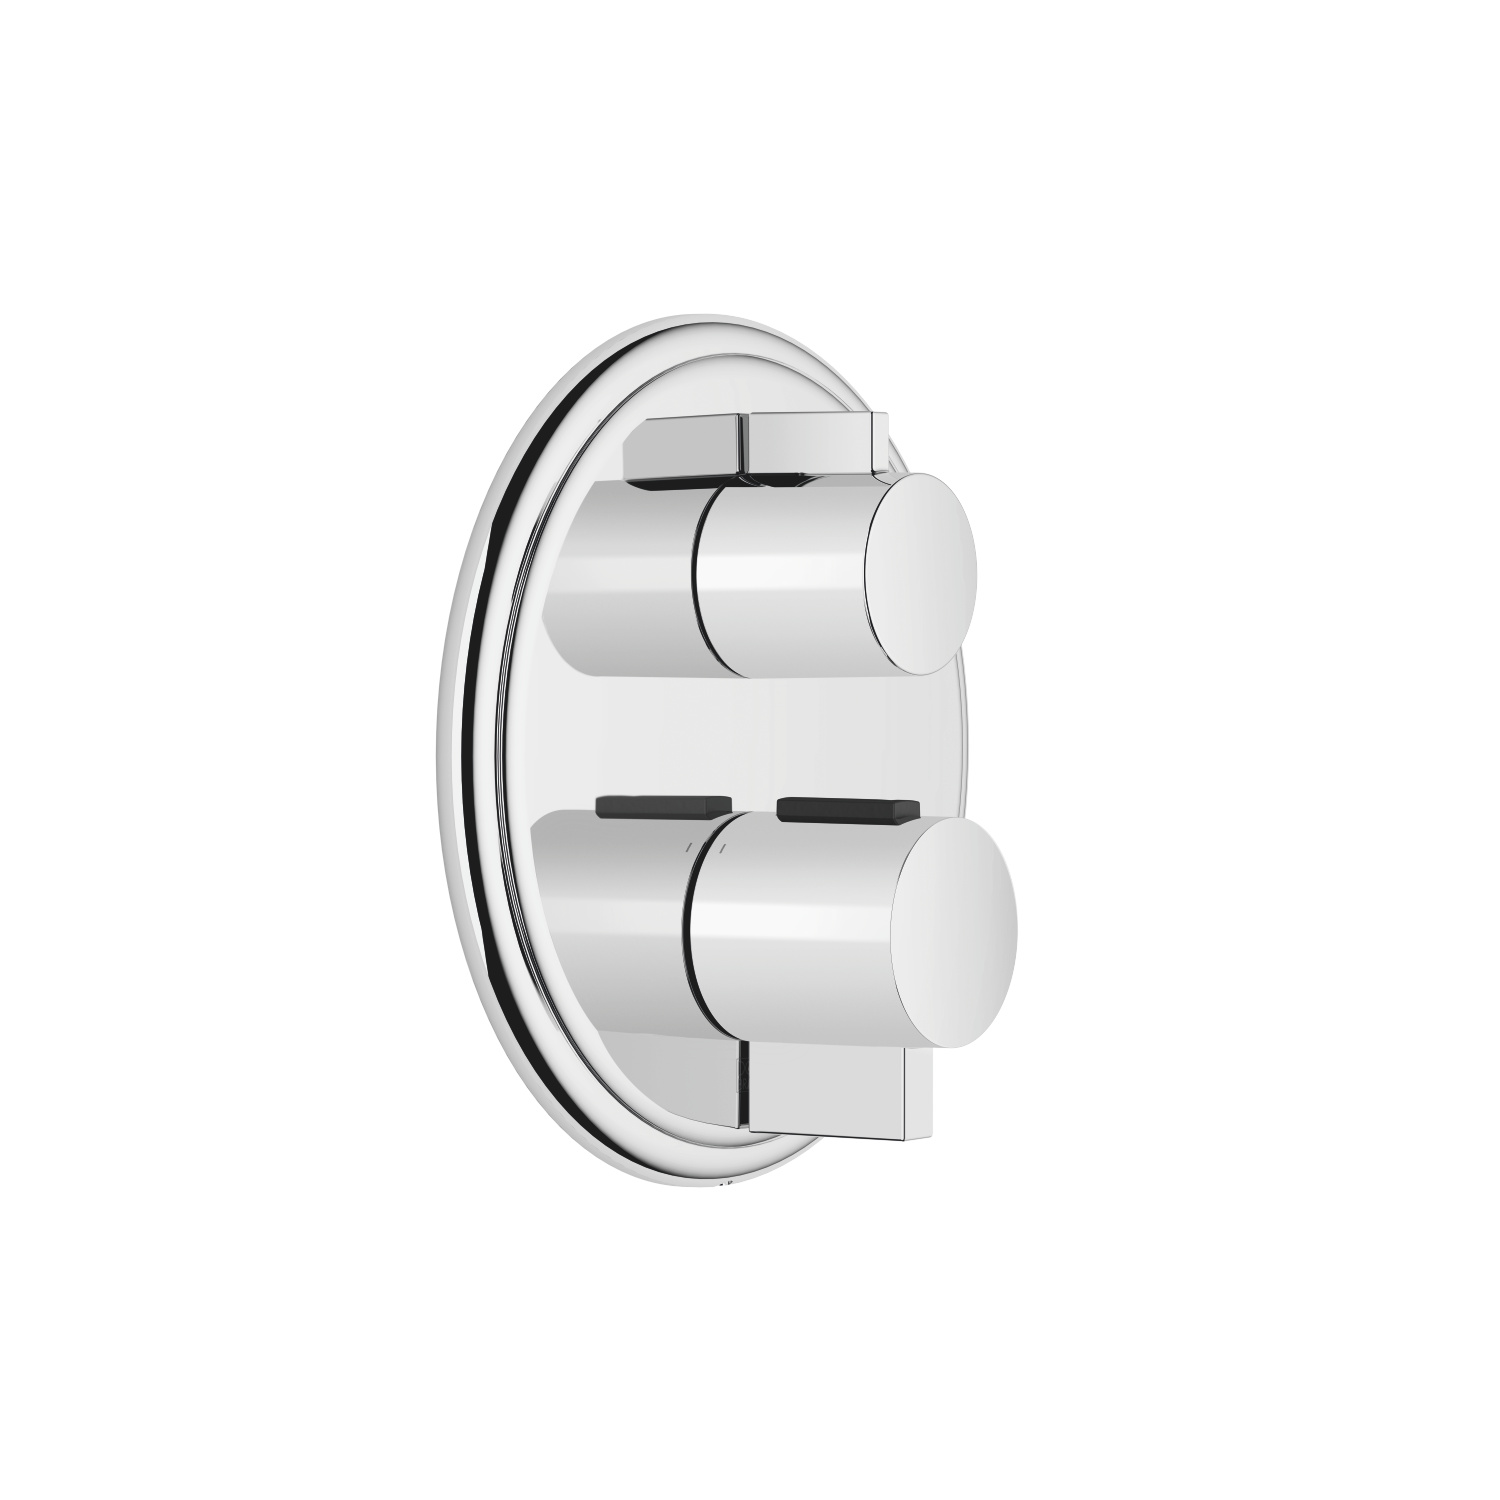 Concealed thermostat with one-way volume control - polished chrome